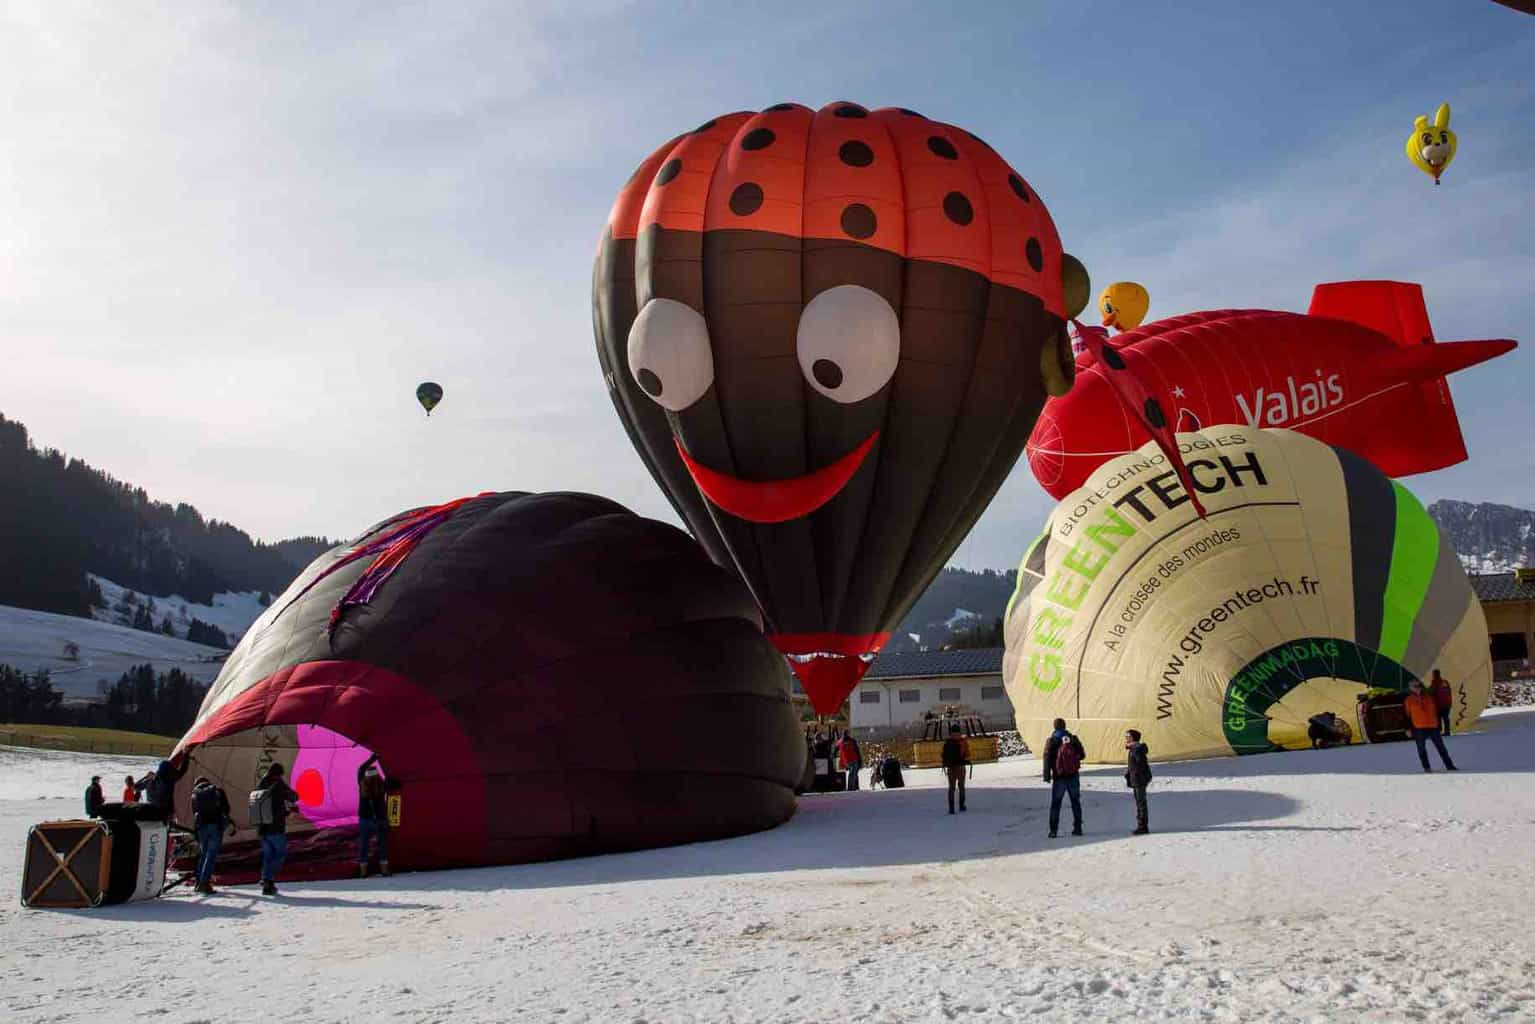 The Fabulous Hot Air Balloons at Chateau d'Oex